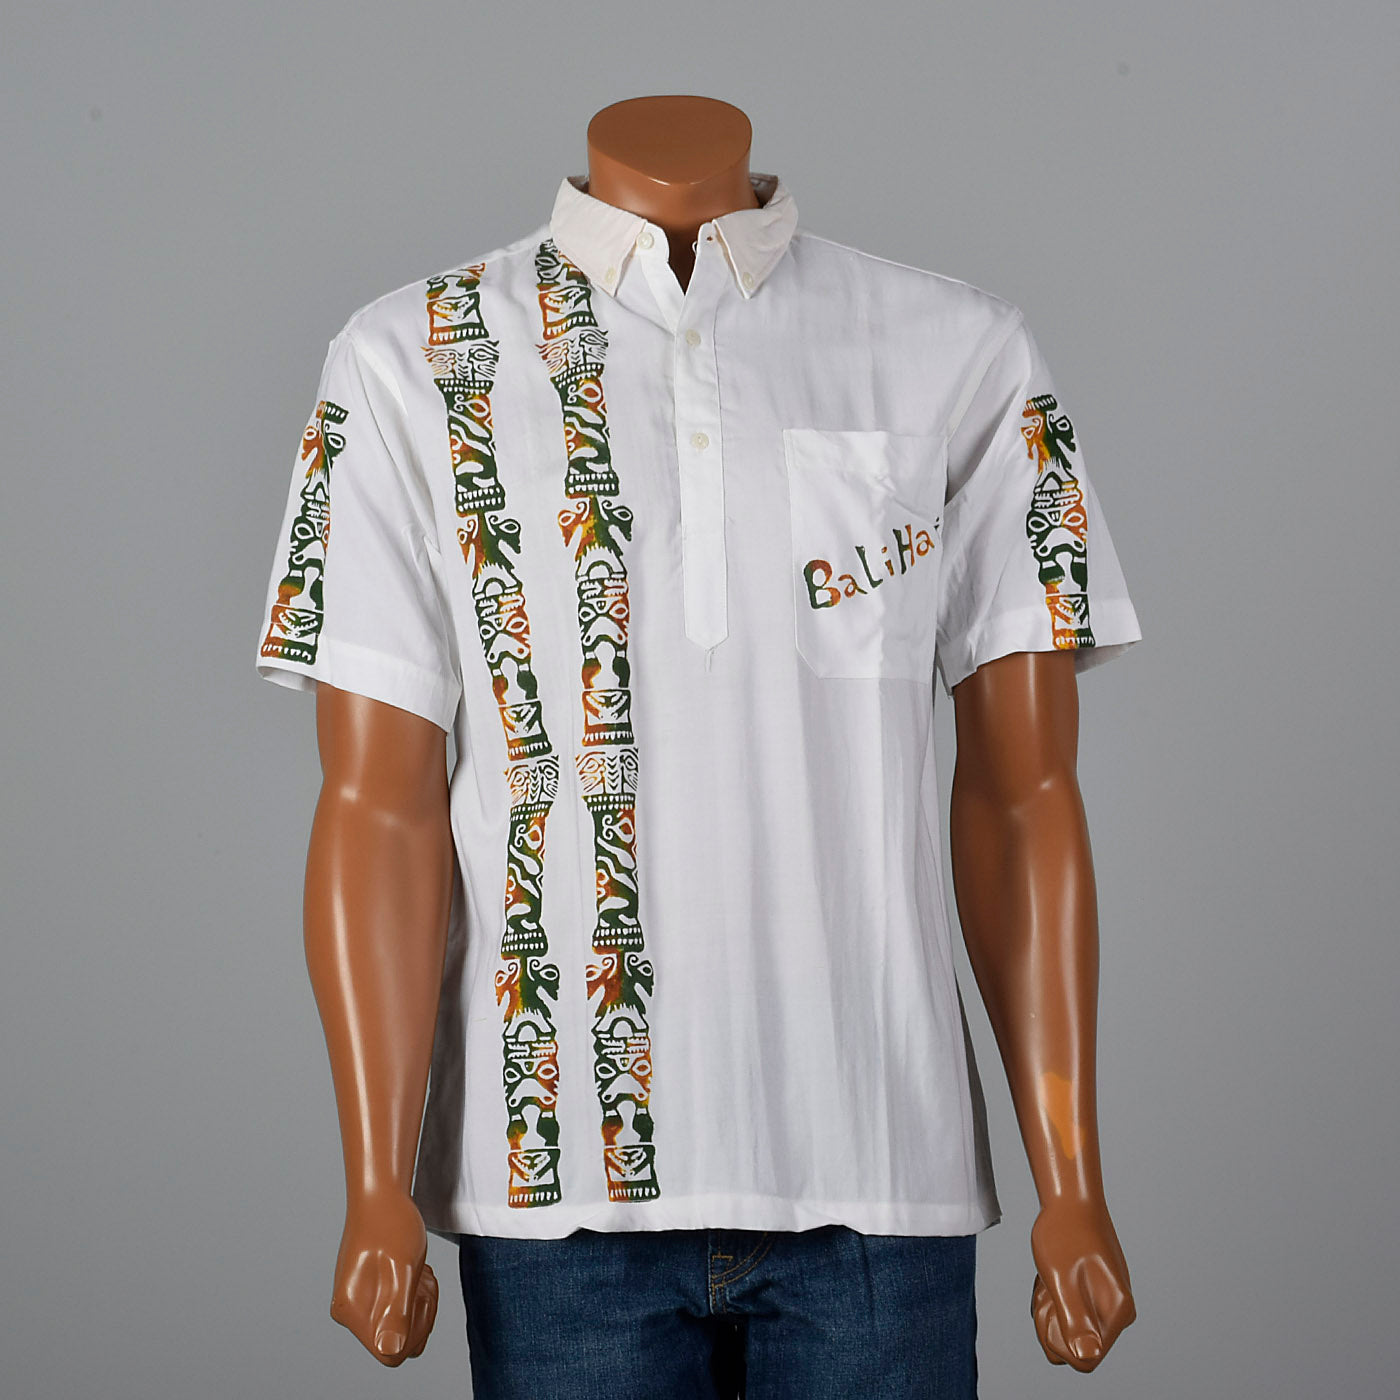 1960s Bali Hai Uniform Shirt